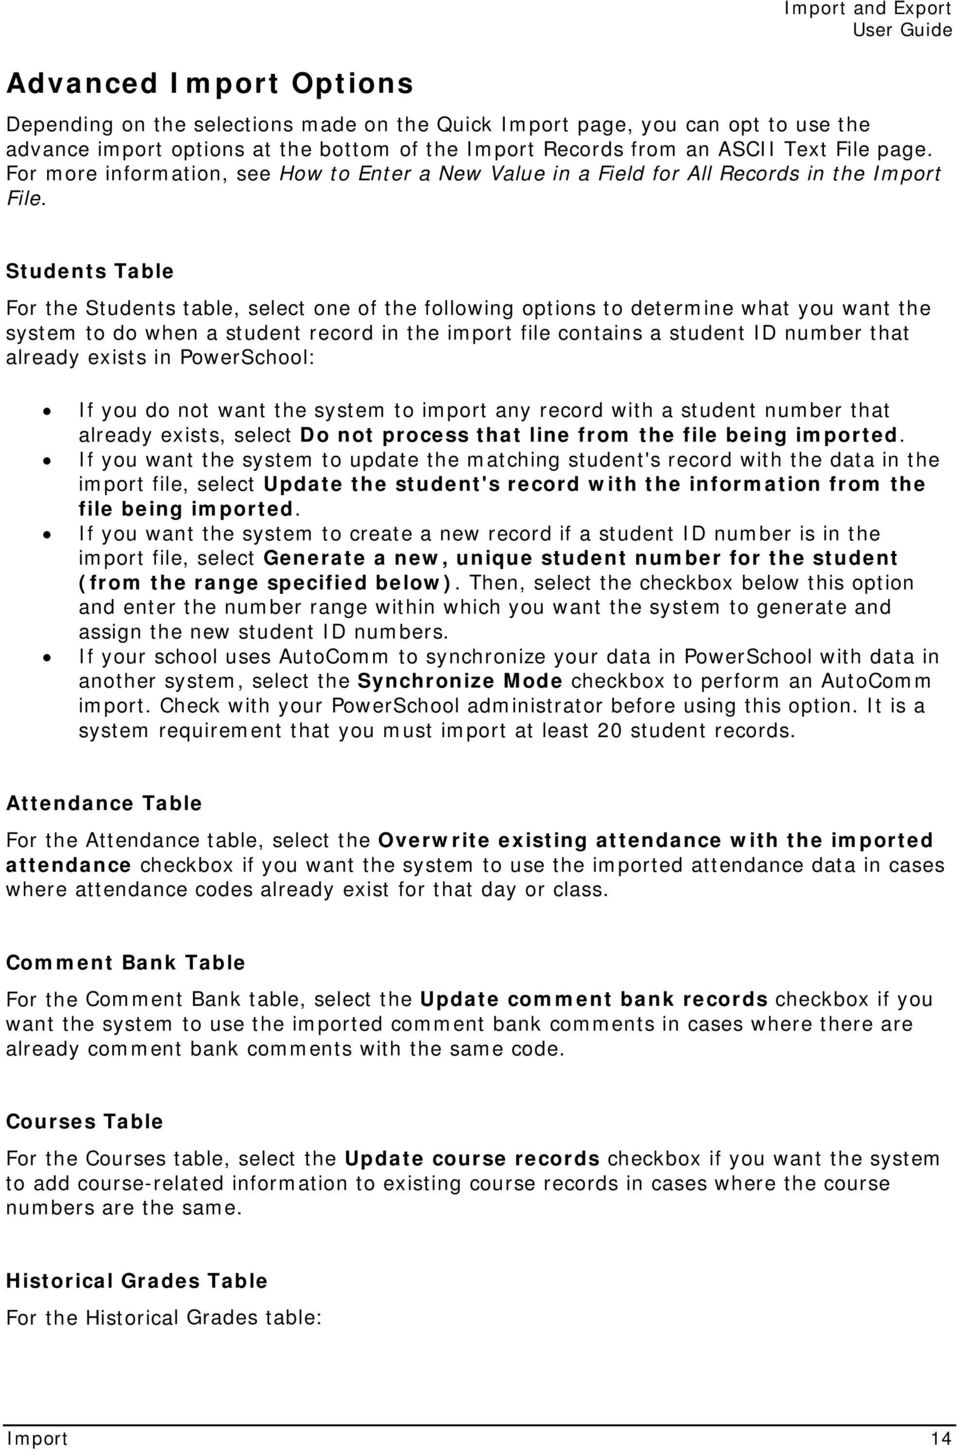 Students Table For the Students table, select one of the following options to determine what you want the system to do when a student record in the import file contains a student ID number that